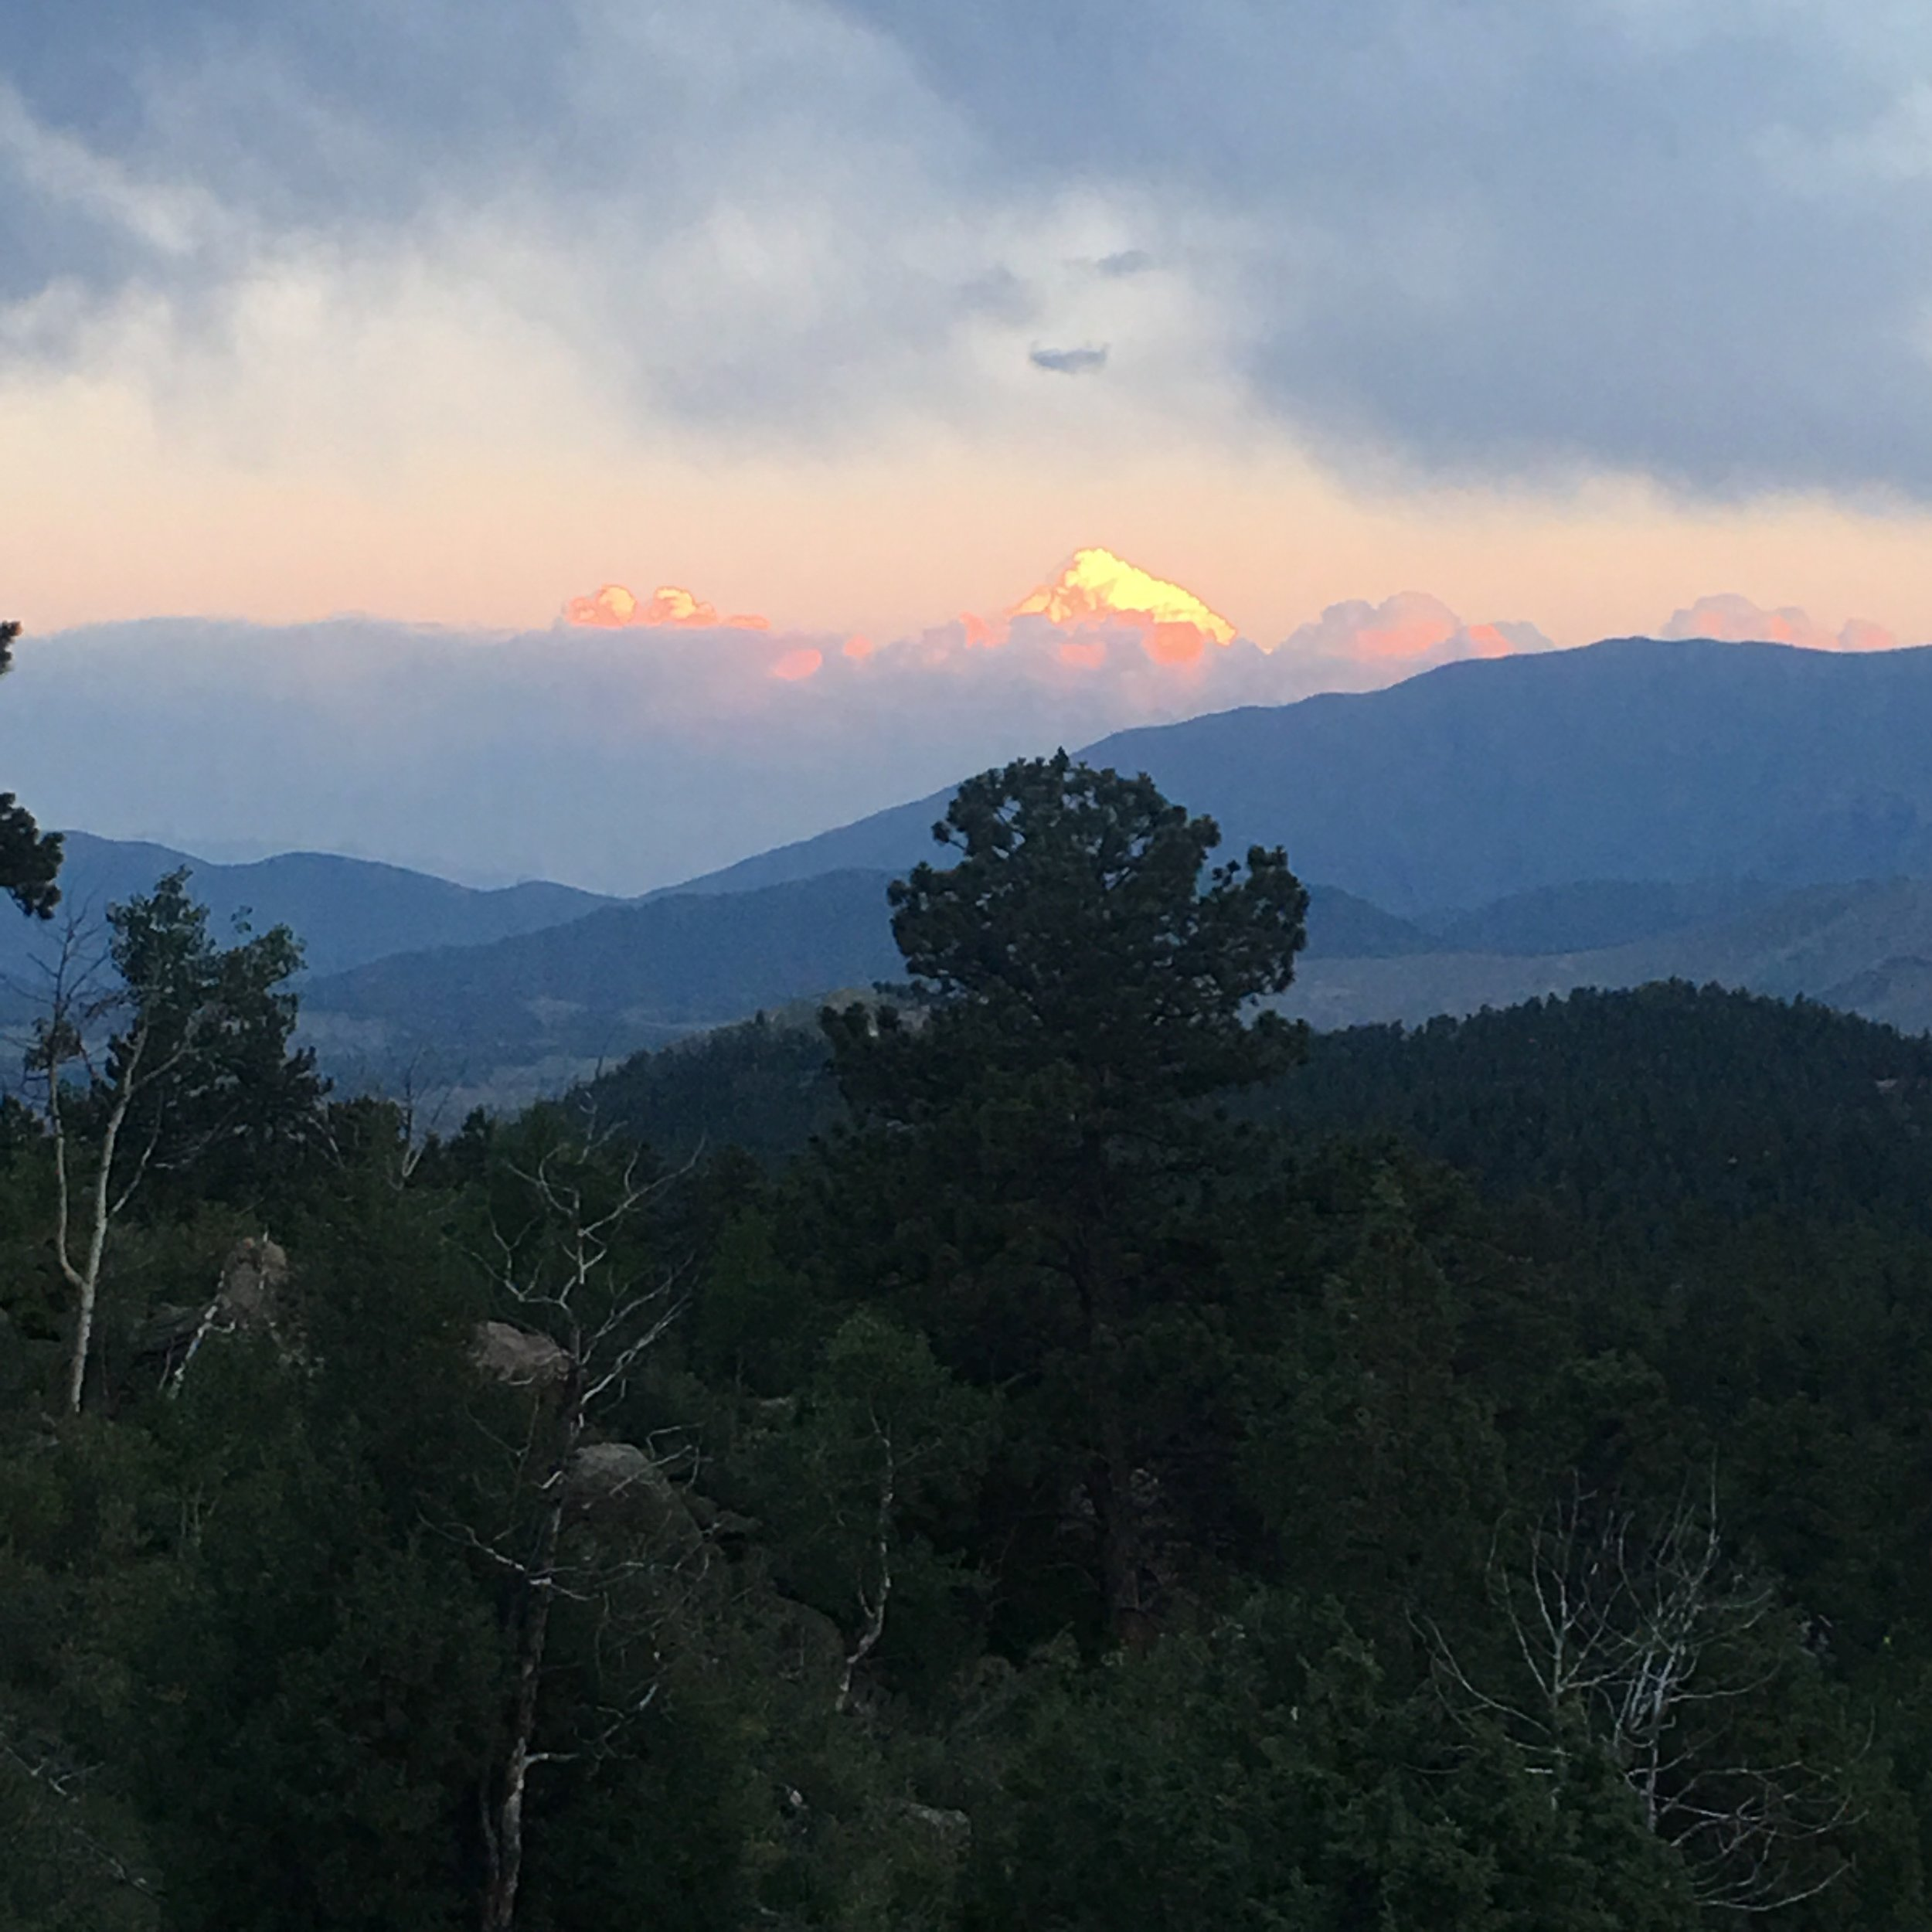 Price - THE FULL SABBATICAL INCLUDING LODGINGThursday, Aug 2, 2018-- Sunday, Aug 5, 2018Price: $460.00 + lodging = Prices varyEARLY BIRD PRICE: $345.00 Good until 7/15/18There are several lodging options please contact me via email to discuss the options & pricesemal me at pattiebyron@mac.comAll meals, drinks, snacks providedDeadline to Register is JULY 15, 2018____________________________THE FULL SABBATICAL NOT INCLUDING LODGINGAll meals, drinks & snacks providedThursday, Aug 2, 2018-- Sunday, Aug 5, 2018Price: $460.00EARLY BIRD PRICE: $345.00 Good until 7/15/18Deadline to Register is JULY 25, 2018____________________________FRIDAY PASSFriday, Aug 3, 2017 10:00am - 10:00pm ONLY (no lodging)Includes: all meals, drinks & snacks . Swag bag, evening art trip to Denver & optional morning yoga @ 8:30amPrice: $197.00 Good until 7/15/18EARLY BIRD PRICE: $147.75 Good until 7/15/18Deadline to Register is JULY 25, 2018____________________________SATURDAY PASSSaturday, Aug 4, 2017 8:00am - 6:00pm ONLY (no lodging )Includes: all meals, drinks & snacks . Swag bag, photo shoot w/ professional photographer, movie night && optional morning yoga @ 8:30amPrice: $197.00EARLY BIRD PRICE: $147.75 Good until 7/15/18Deadline to Register is JULY 25, 2018